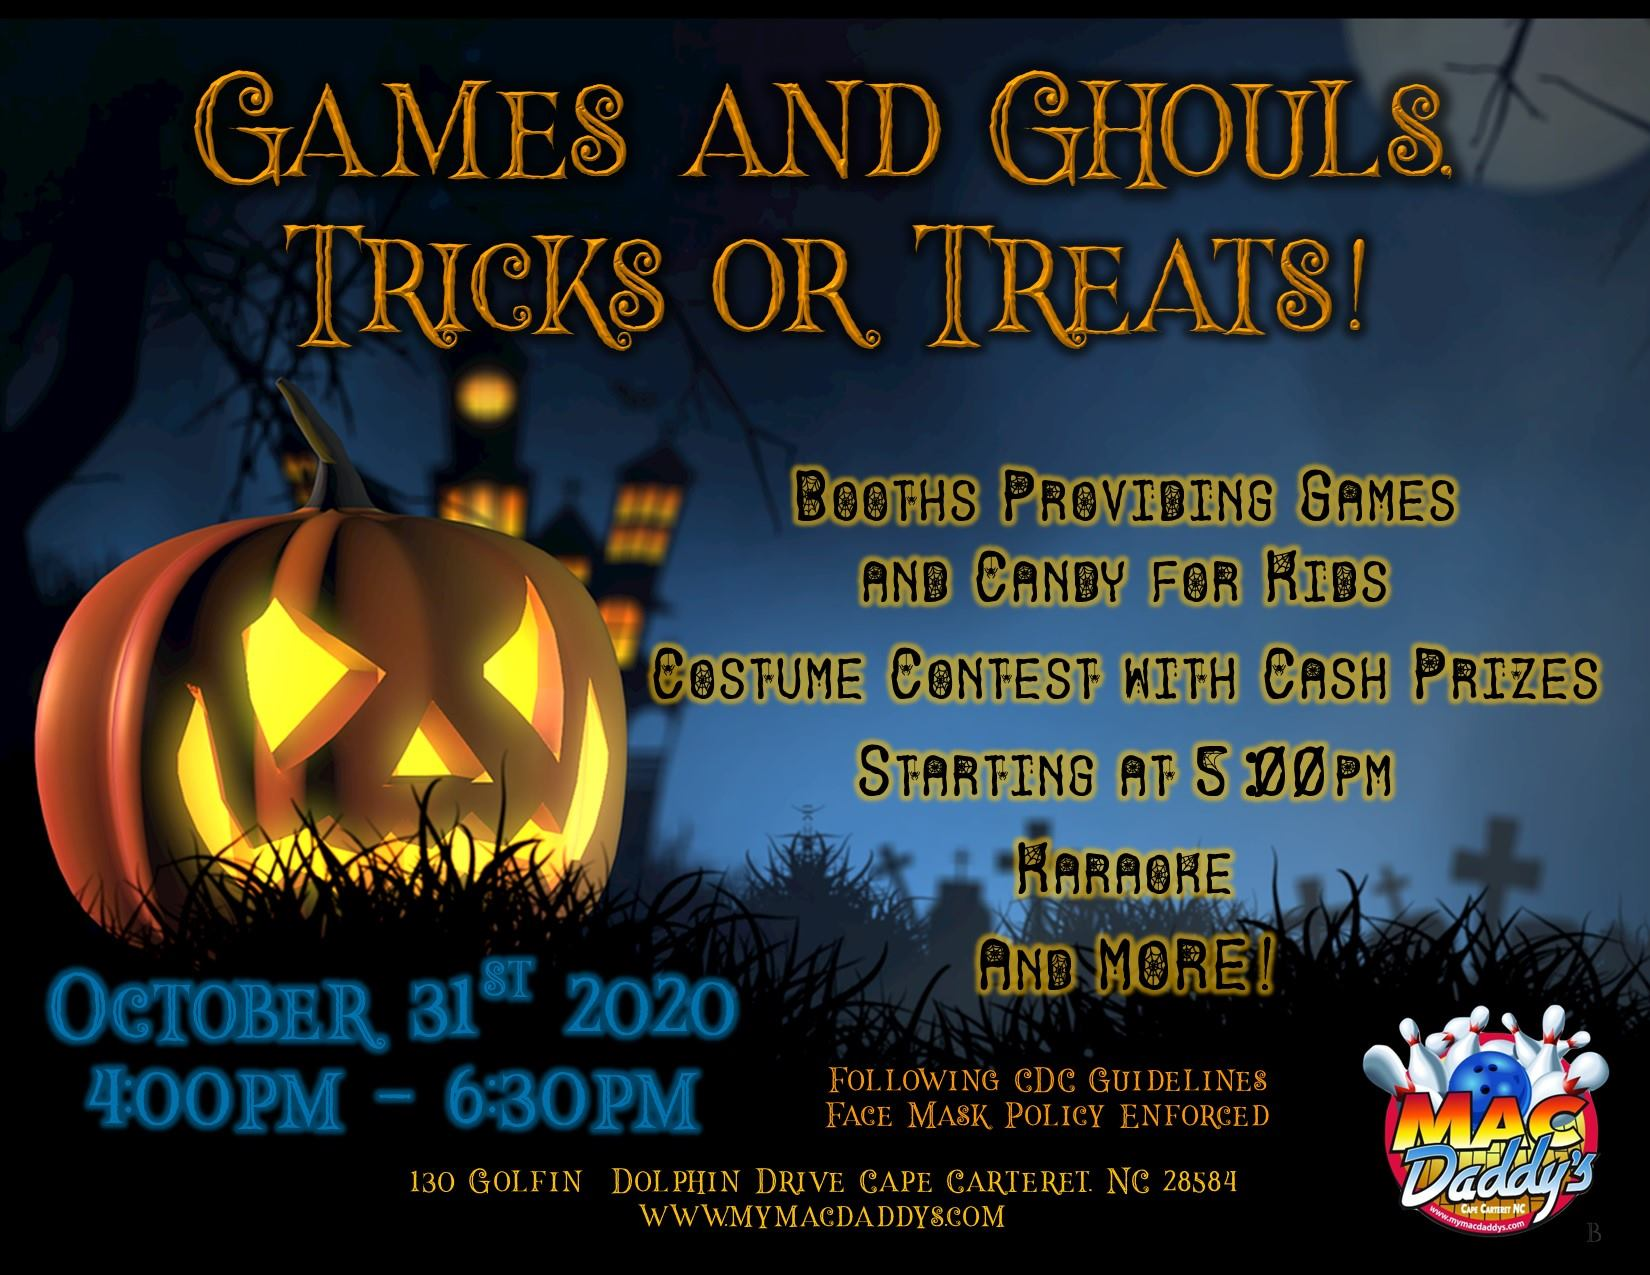 Games and Ghouls Tricks or Treats!